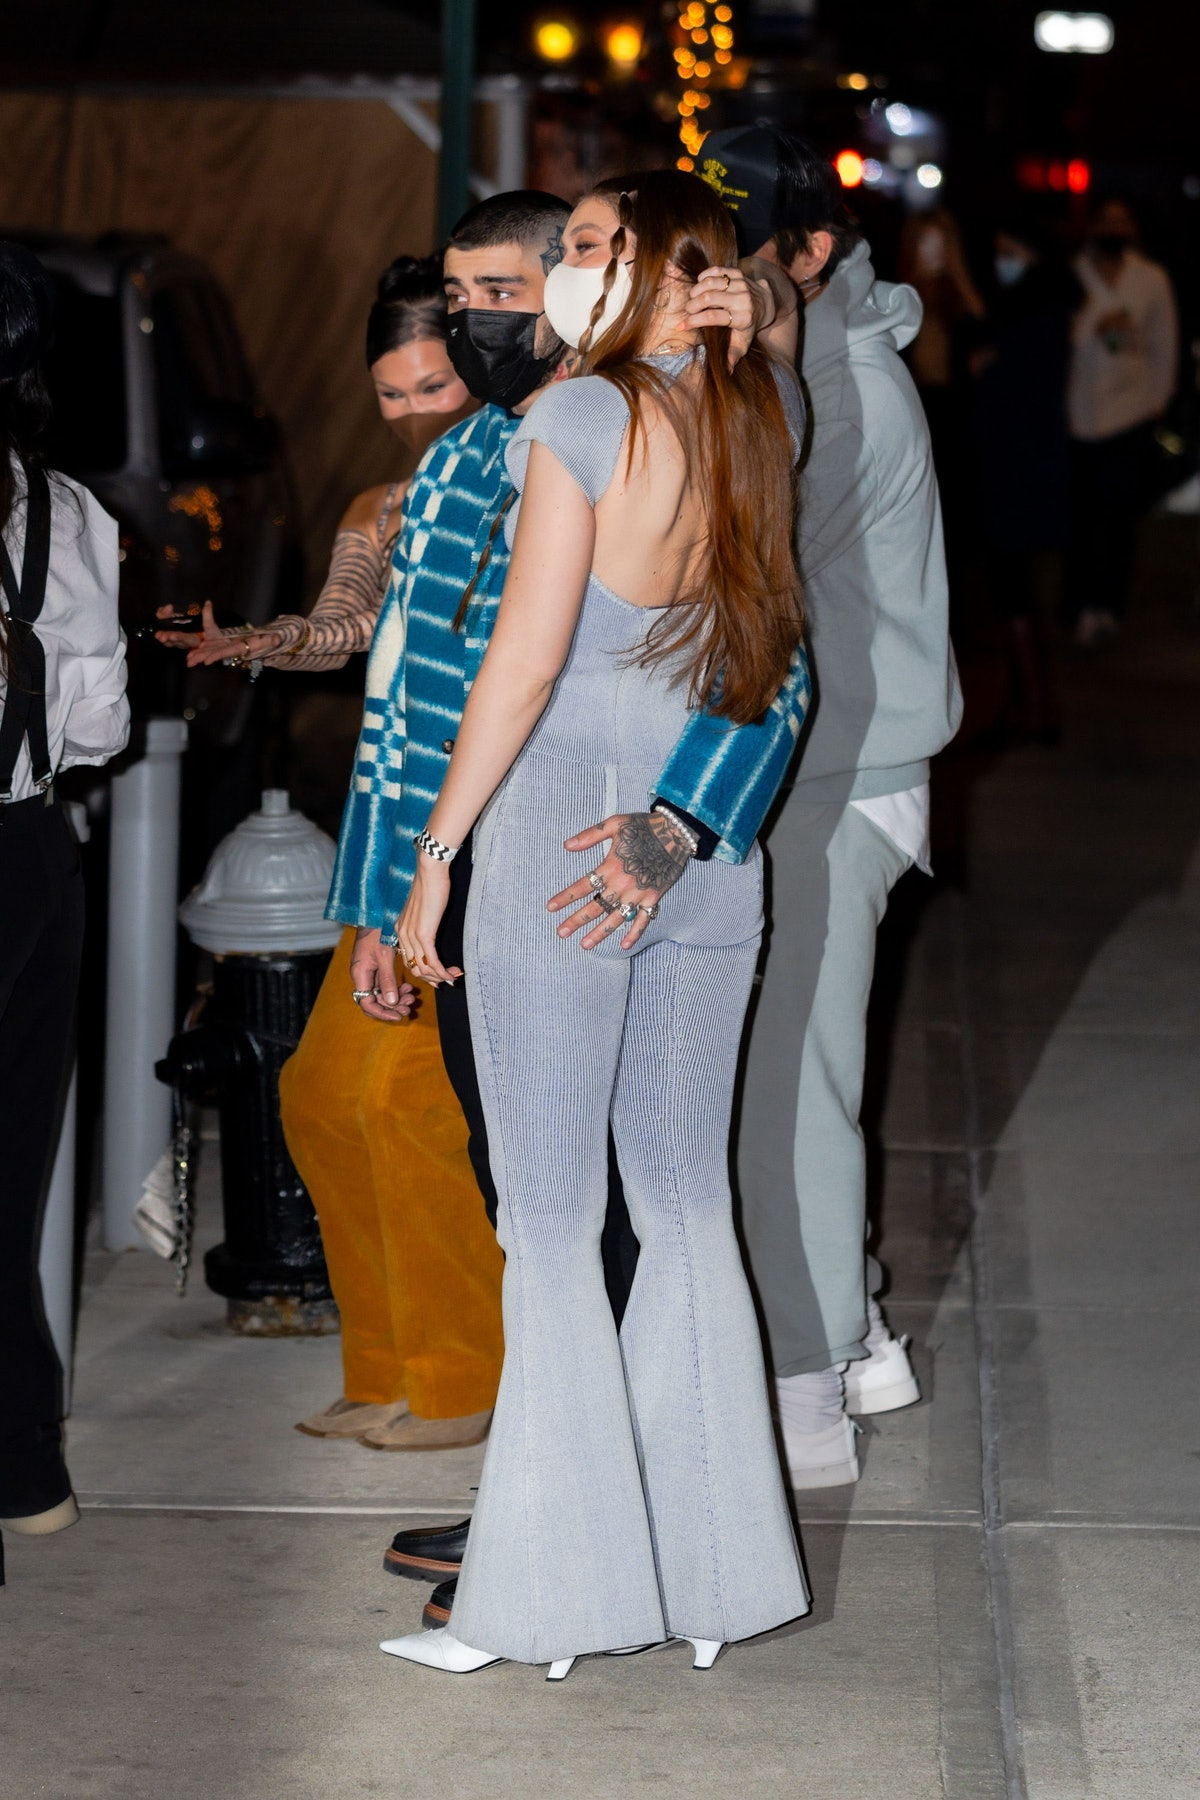 NEW YORK, NEW YORK - APRIL 23: Gigi Hadid and Zayn Malik are seen on her birthday in NoHo on April 23, 2021 in New York City. (Photo by Gotham/GC Images)